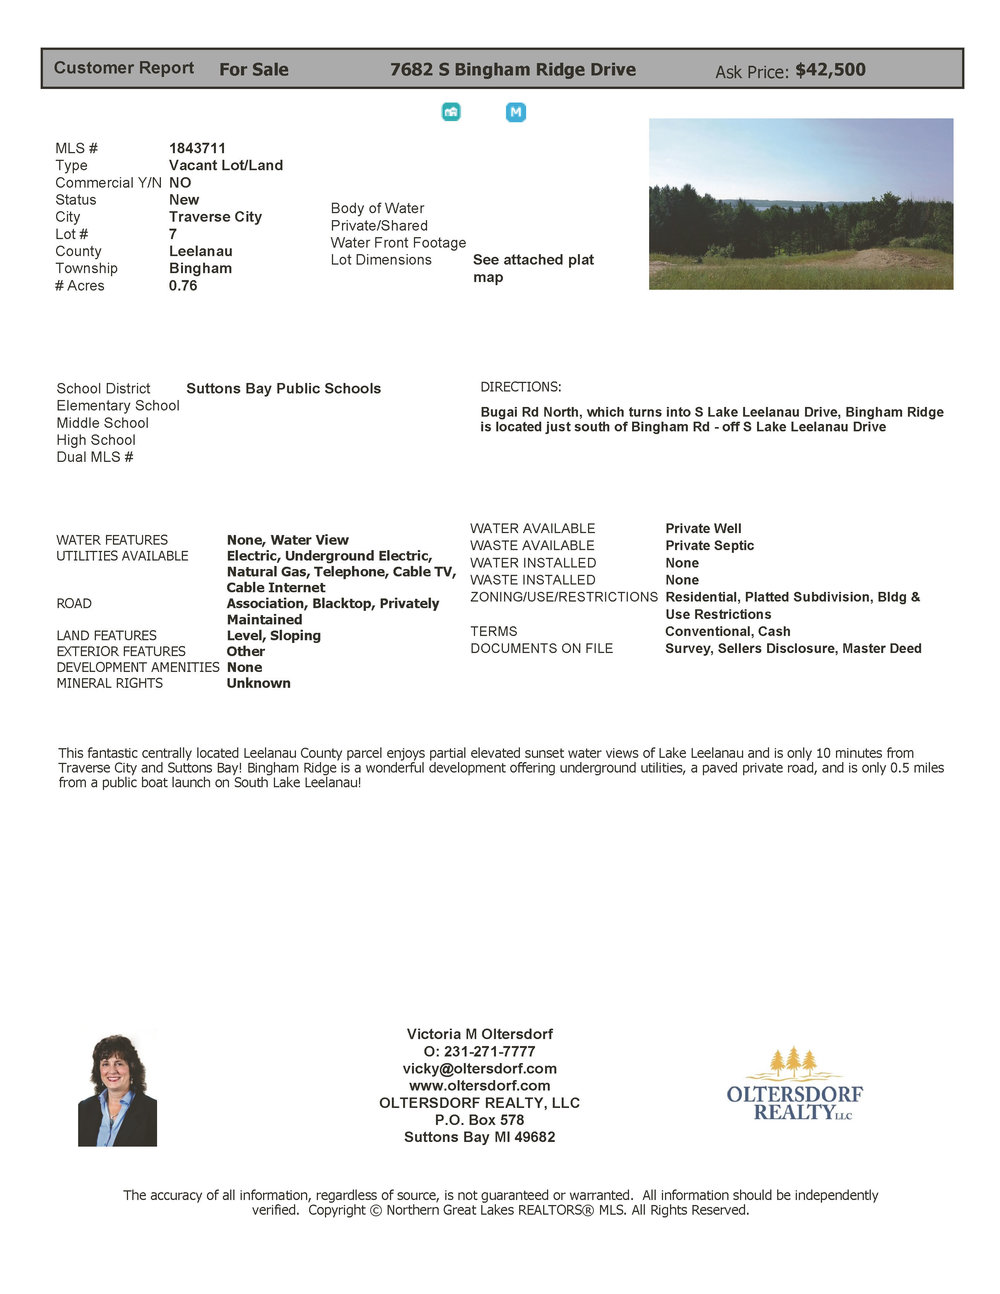 7682 S Bingham Ridge - For Sale by Oltersdorf Realty LLC_Page_03.jpg